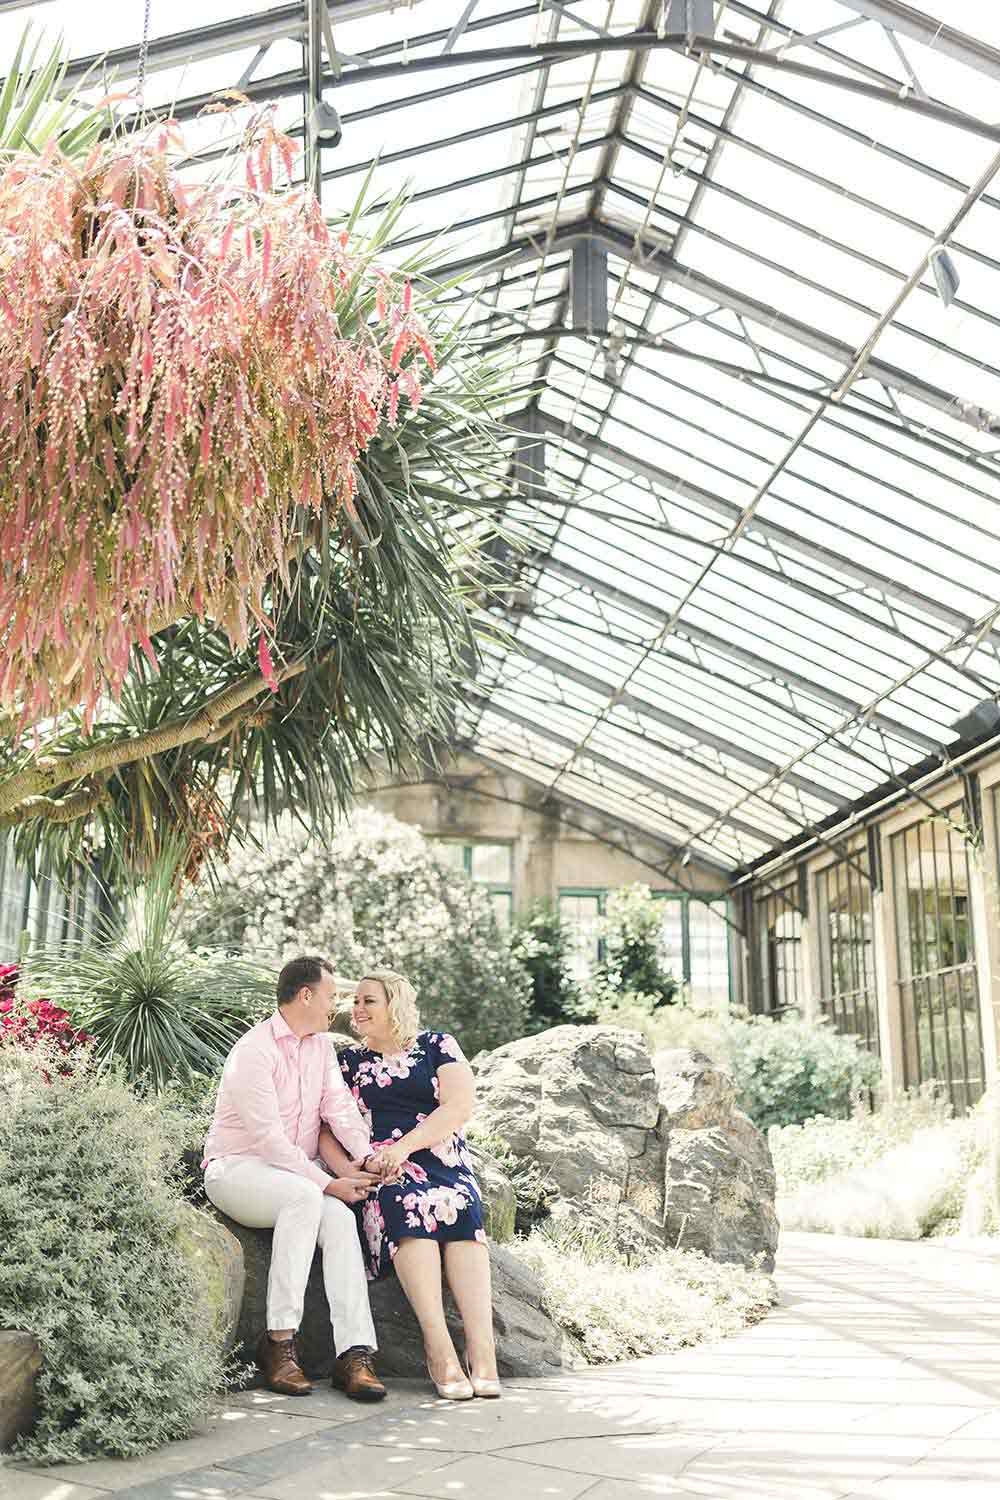 Longwood Gardens Summer Engagement with couple in surrounded by arid climate plants